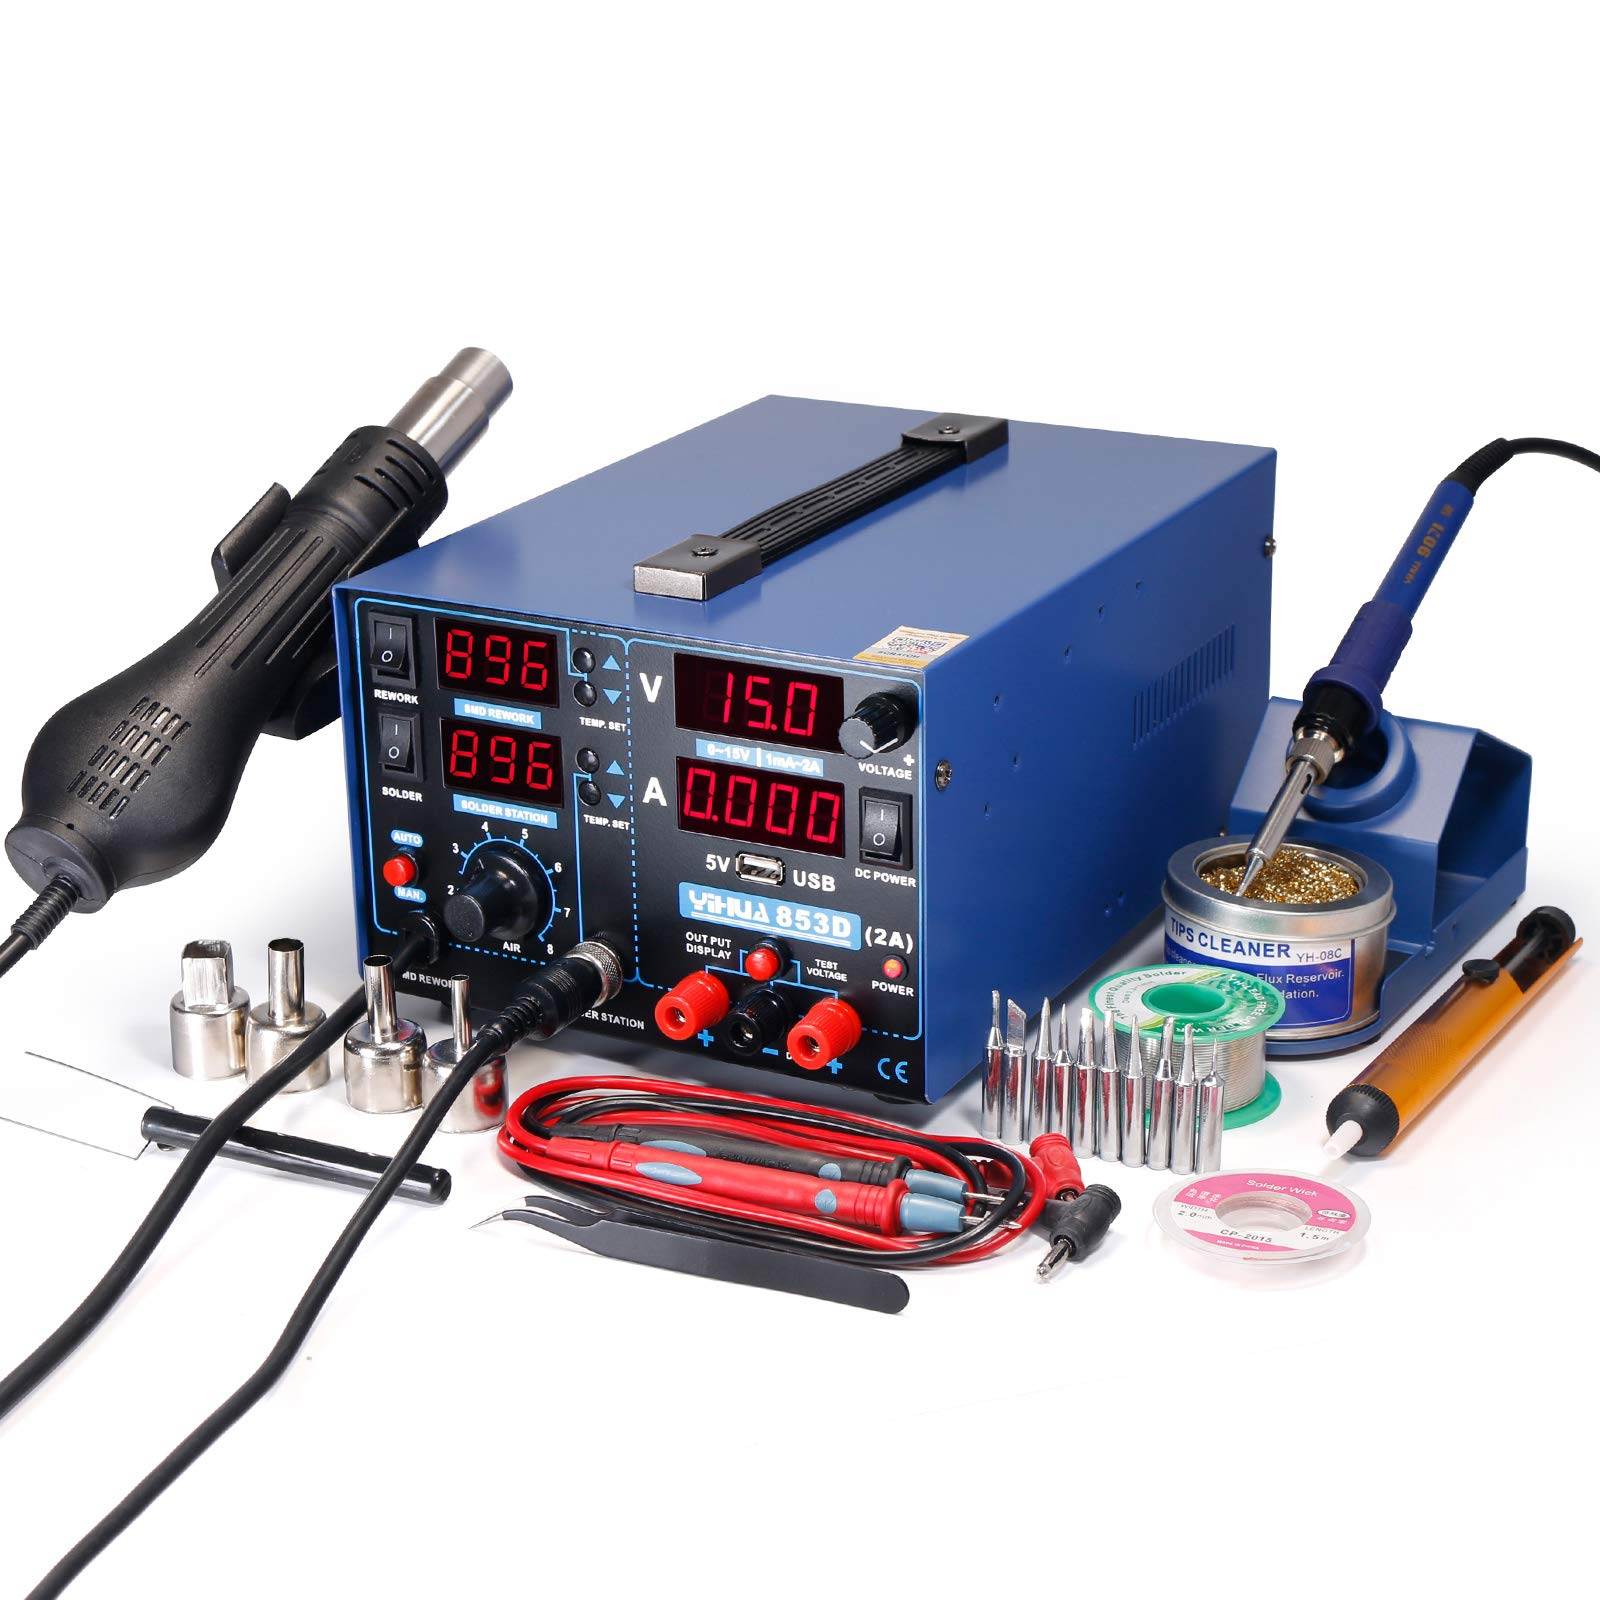 YIHUA 853D 2A USB SMD Hot Air Rework Soldering Iron Station, DC Power Supply 0-15V 0-2A with 5V USB Charging Port and 50 Volt DC Voltage Test Meter by YIHUA